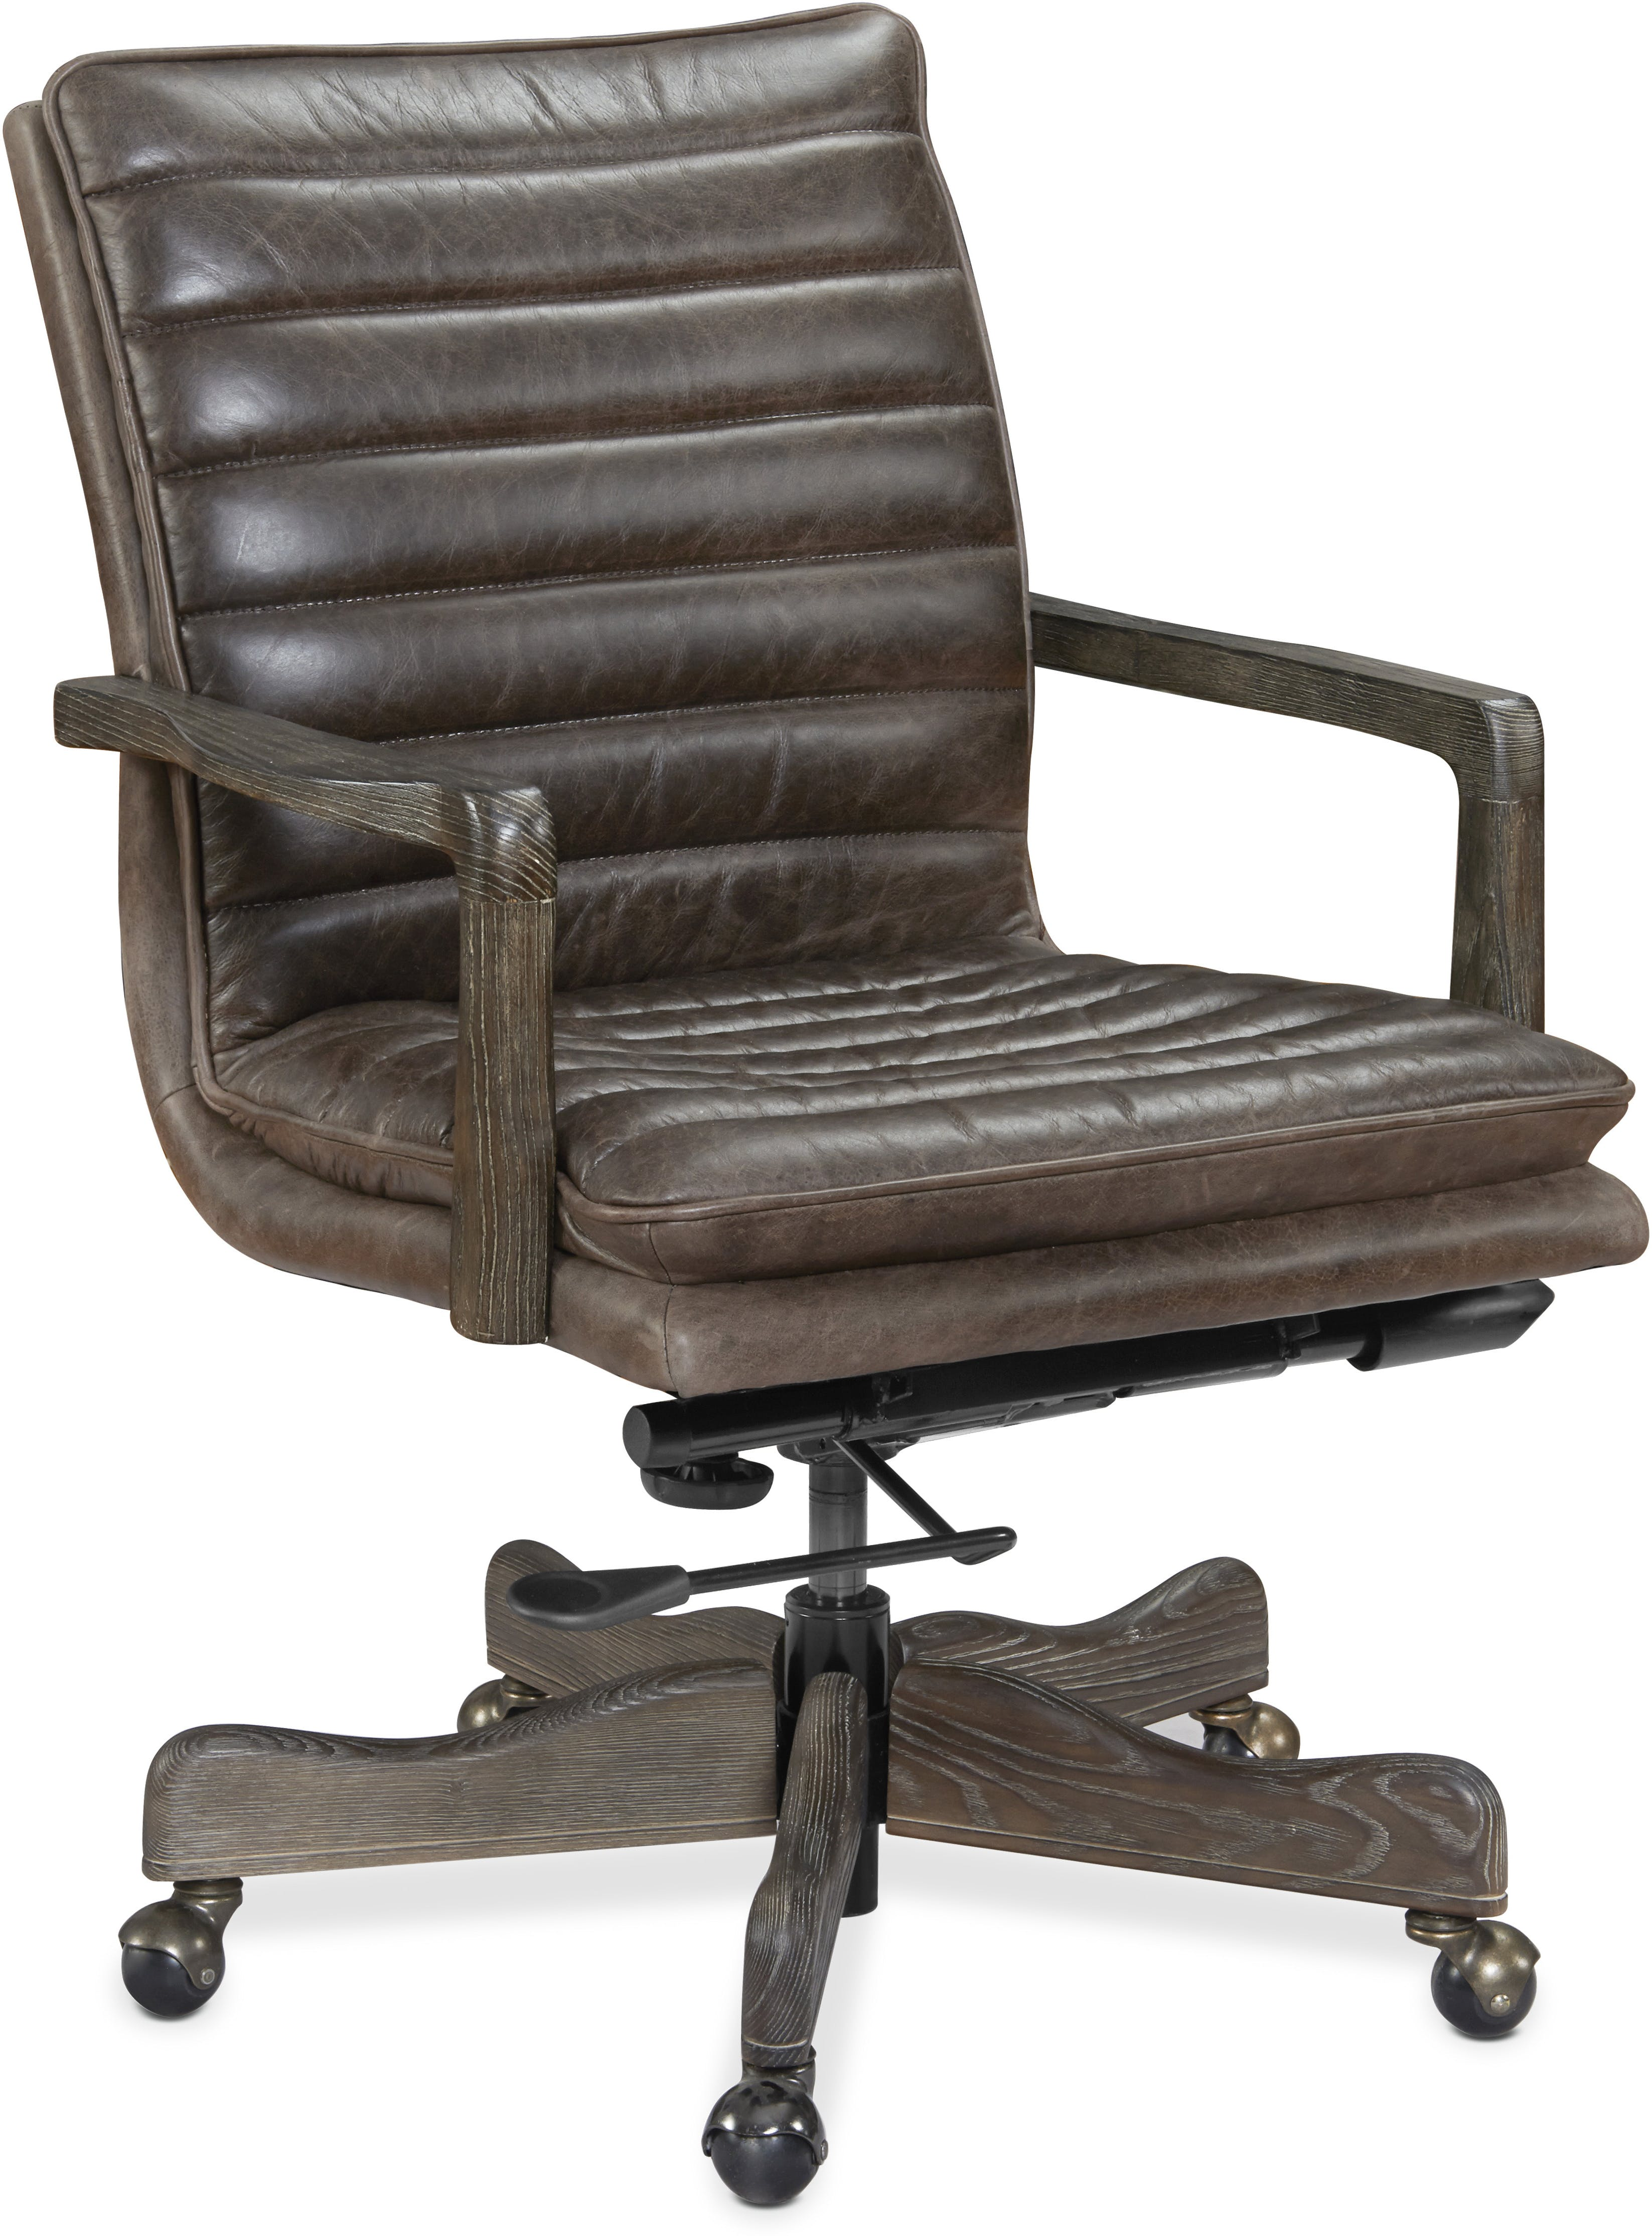 Admirable Langston Executive Swivel Tilt Chair W Metal Sofas And Unemploymentrelief Wooden Chair Designs For Living Room Unemploymentrelieforg